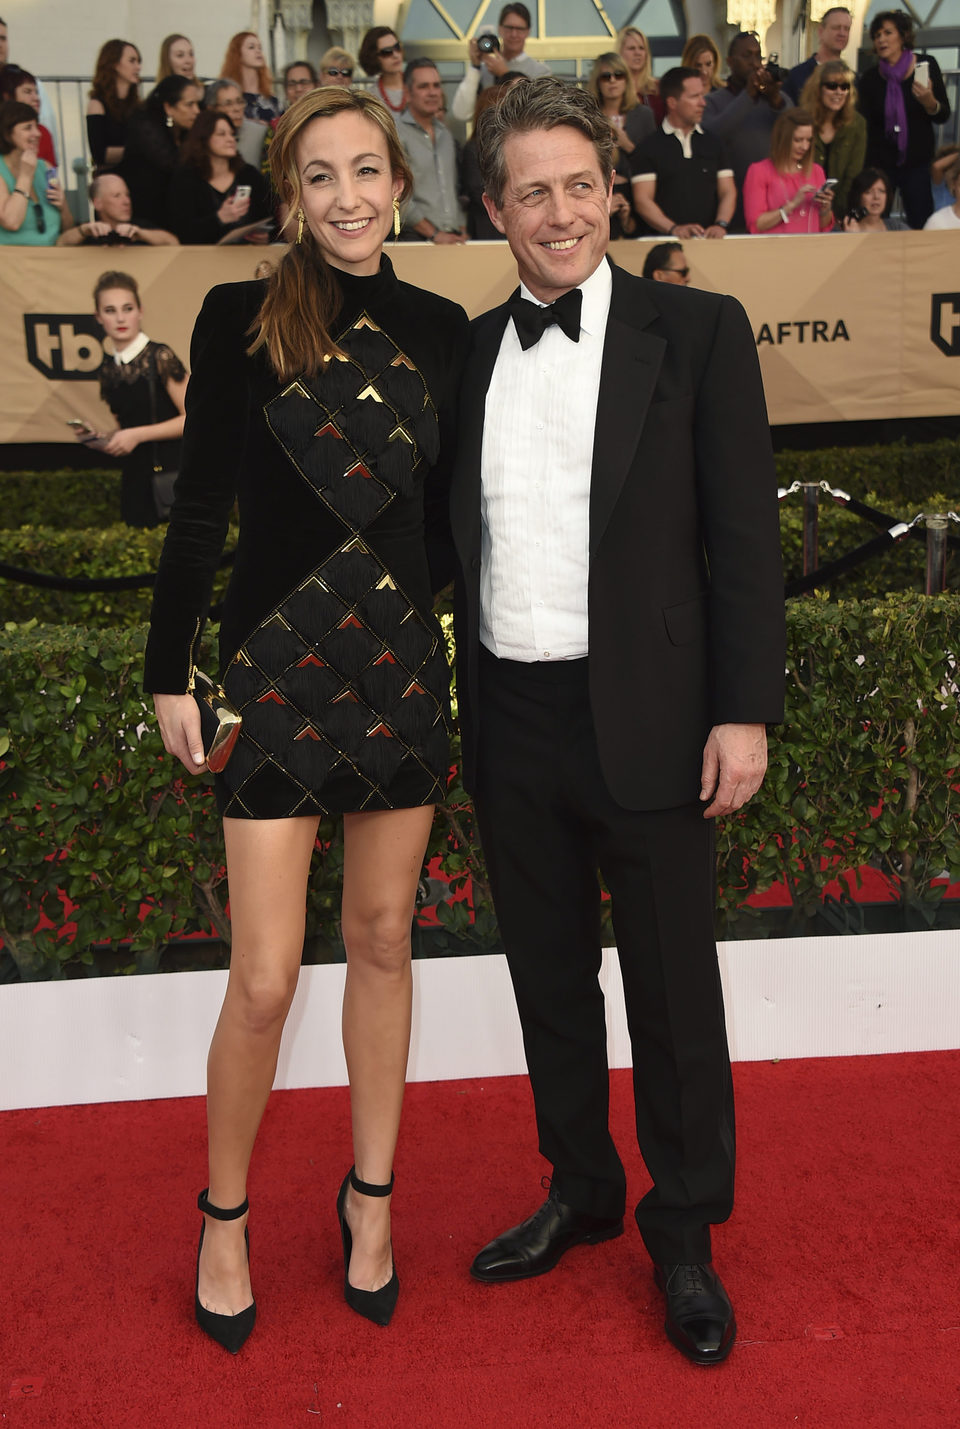 Hugh Grant and Anna Eberstein on the red carpet of SAG Awards 2017